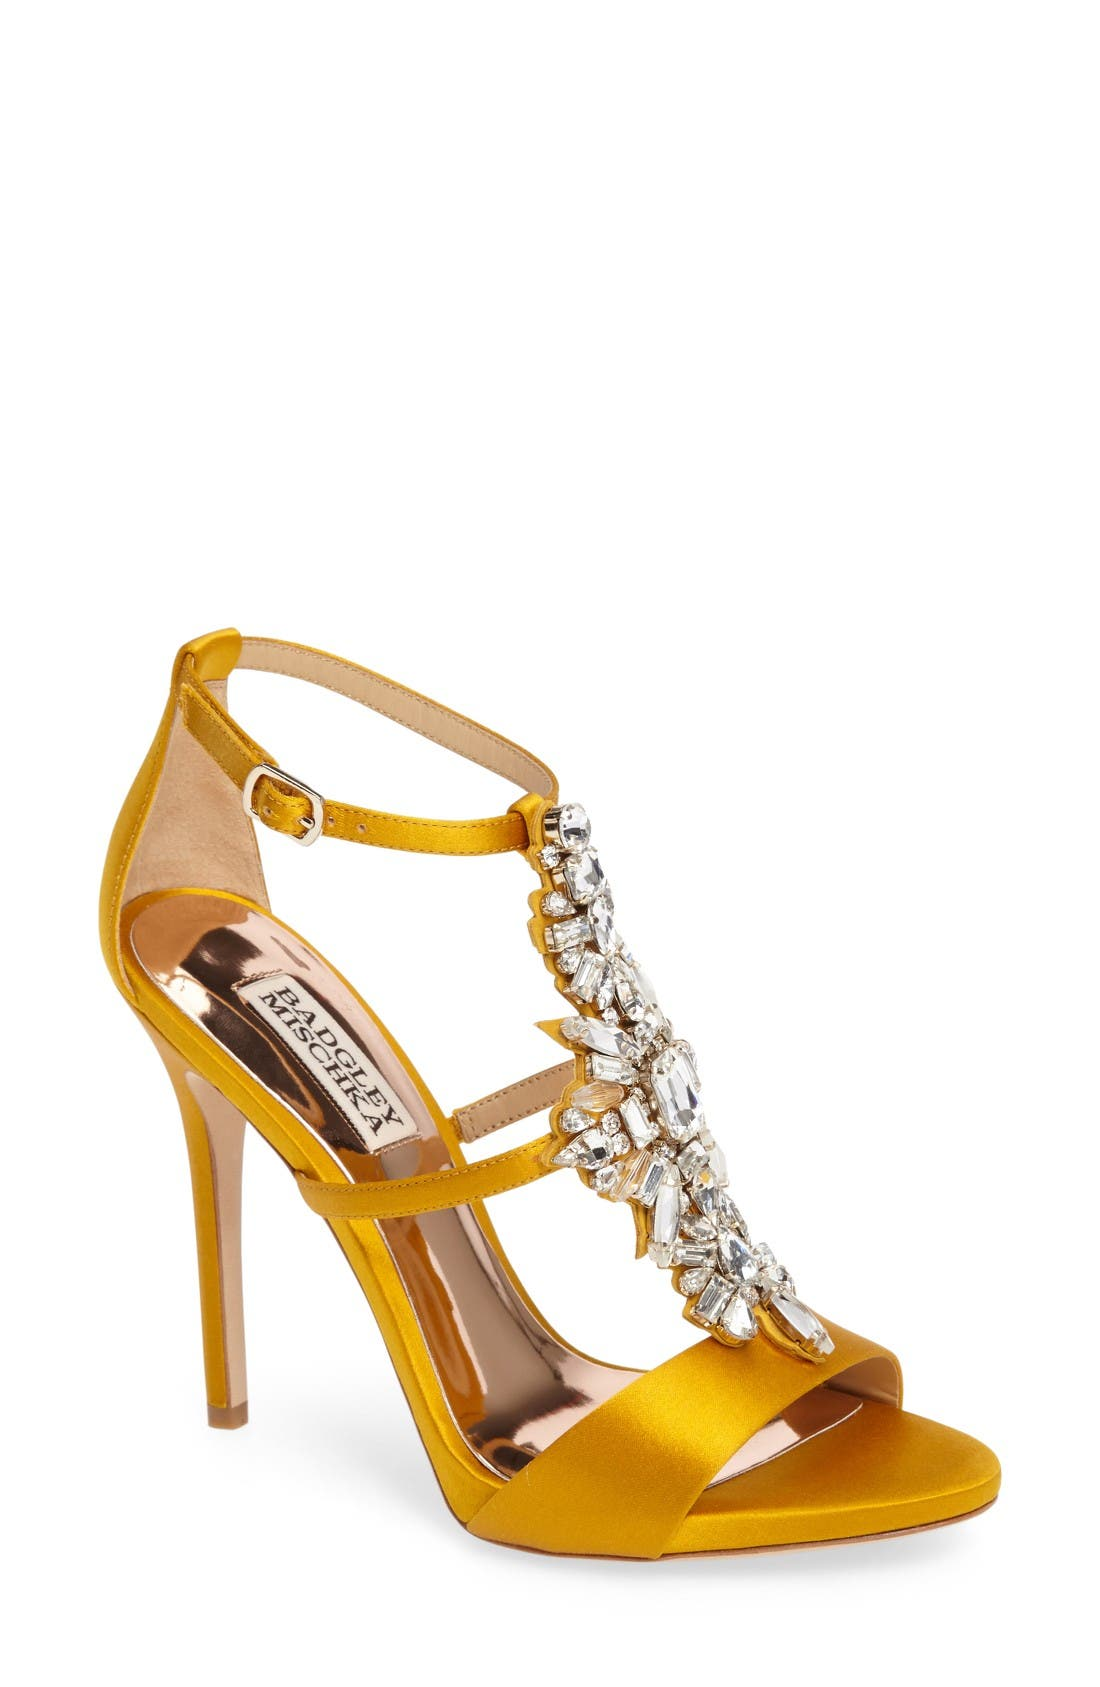 Alternate Image 1 Selected - Badgley Mischka Basile Crystal Embellished Sandal (Women)